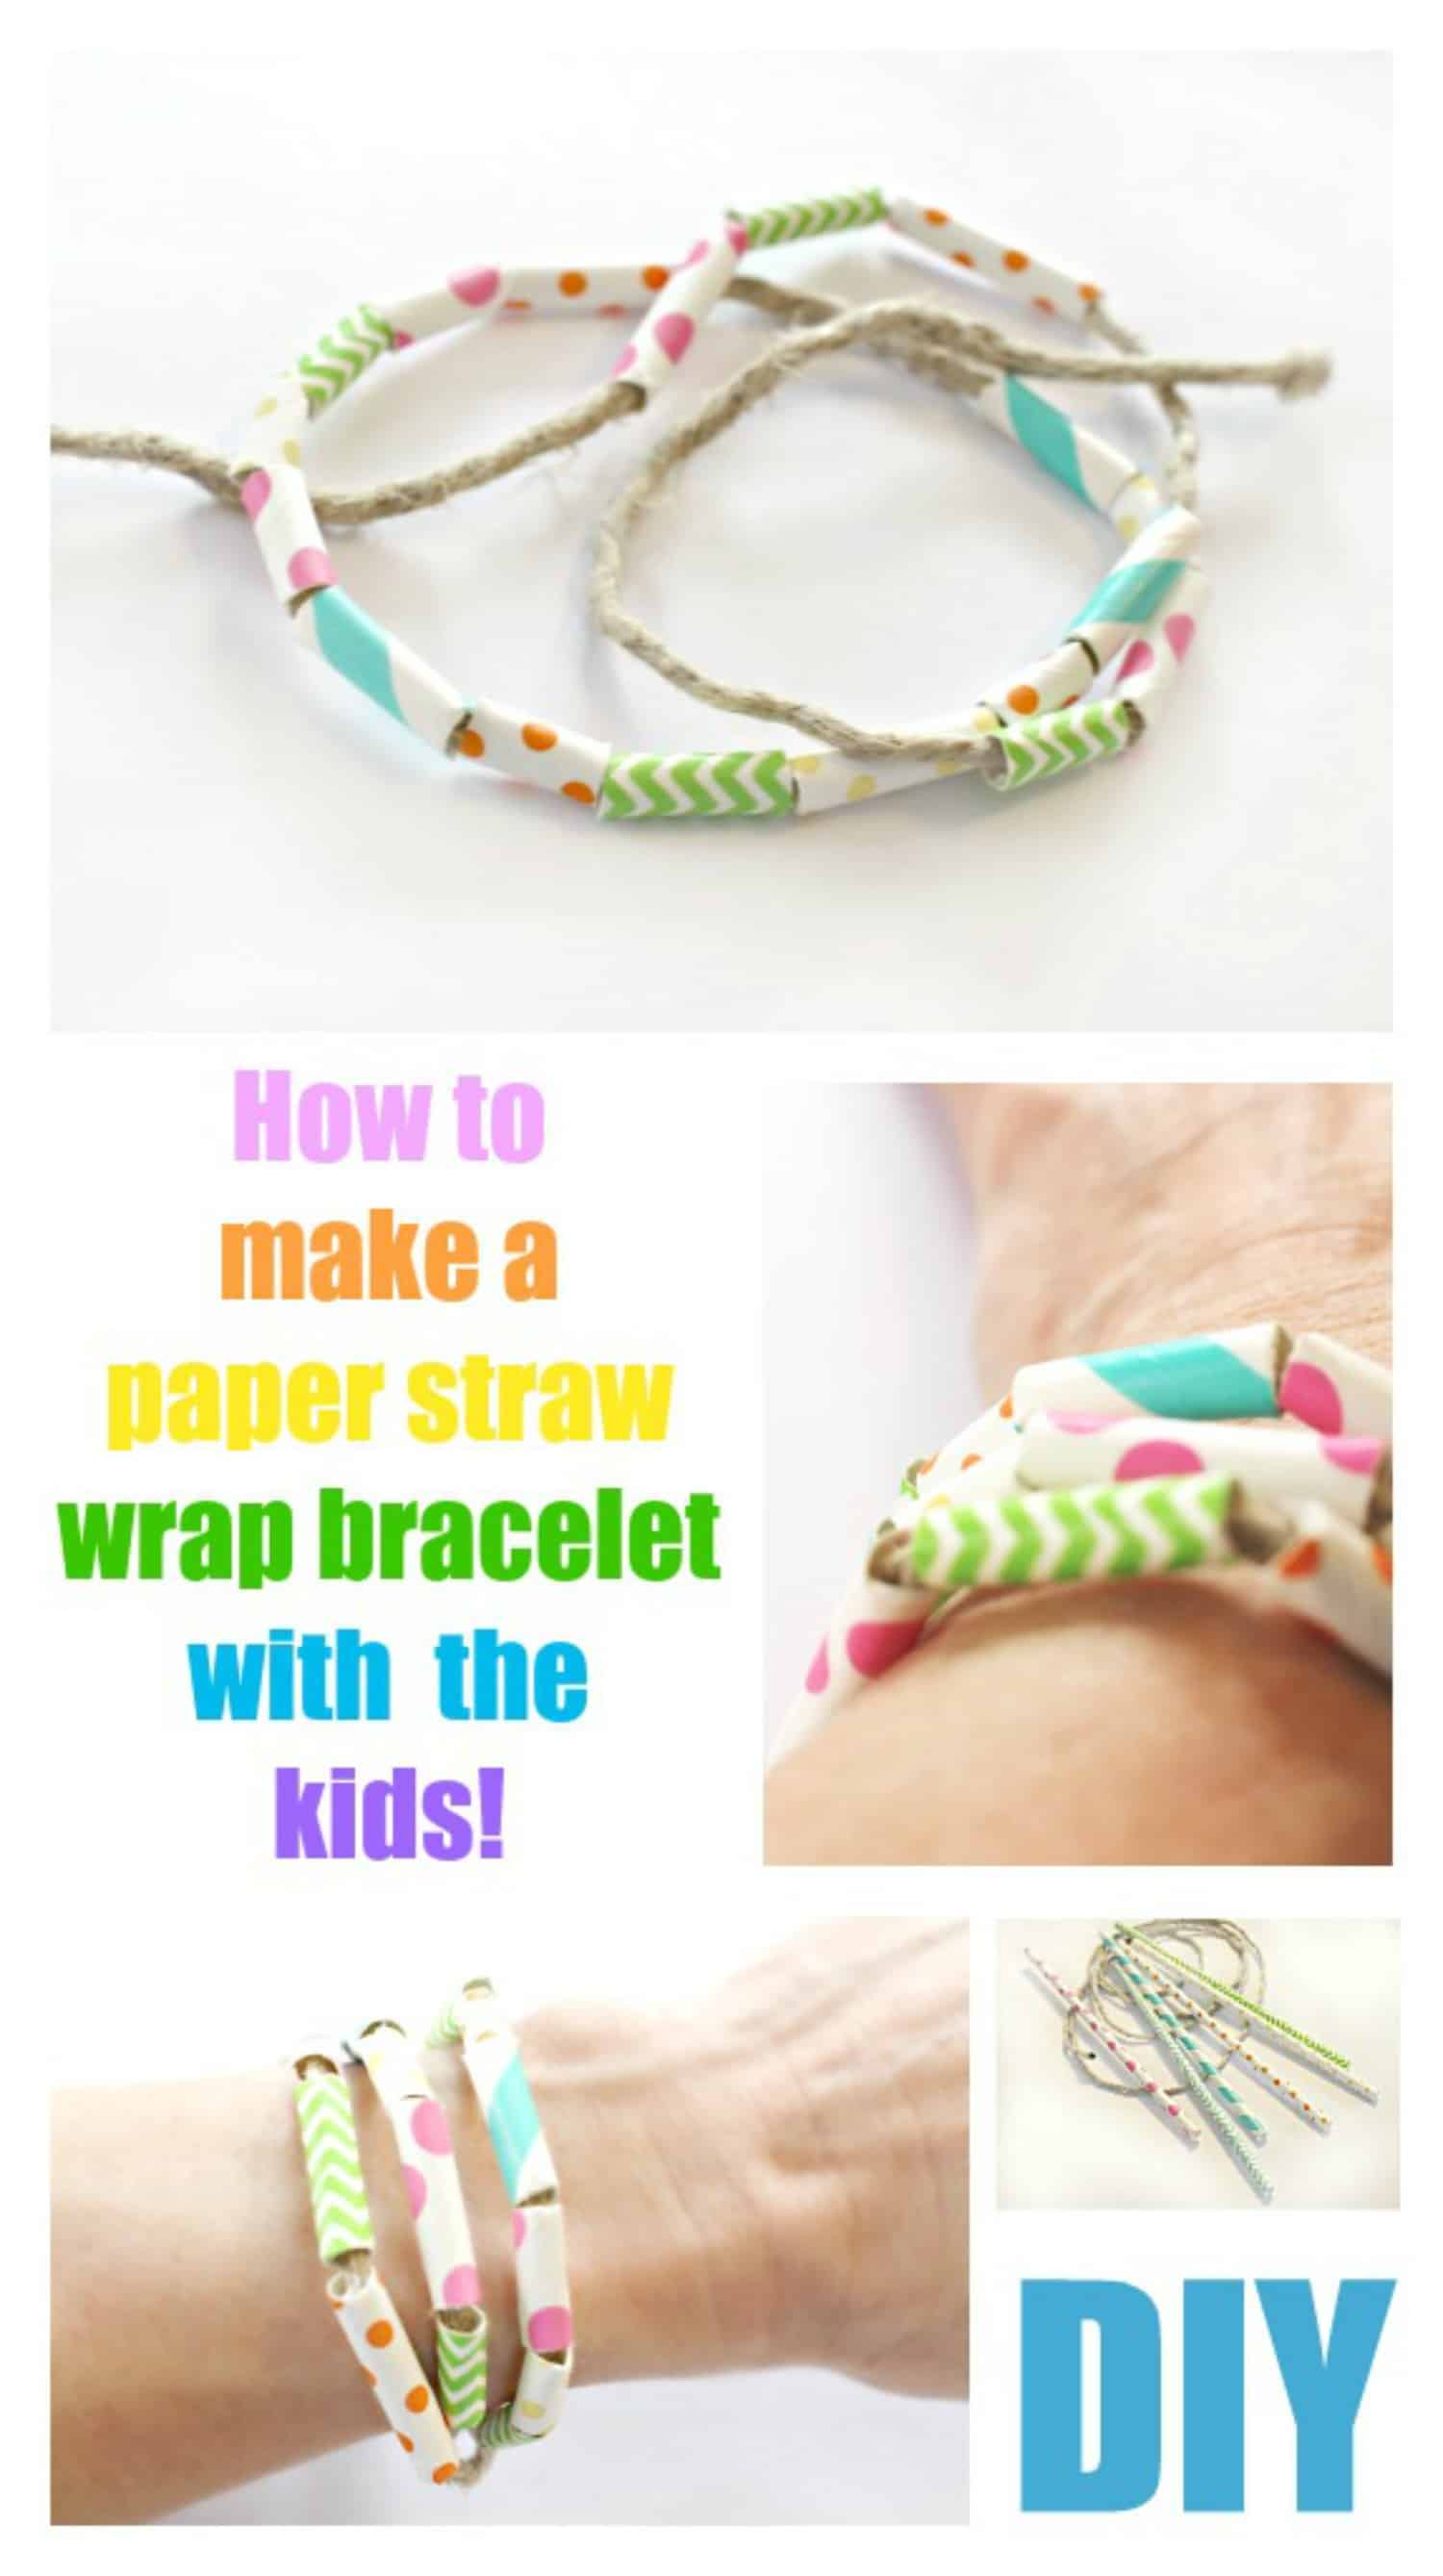 DIY-_-How-to-make-a-paper-straw-wrap-bracelet-with-the-kids-